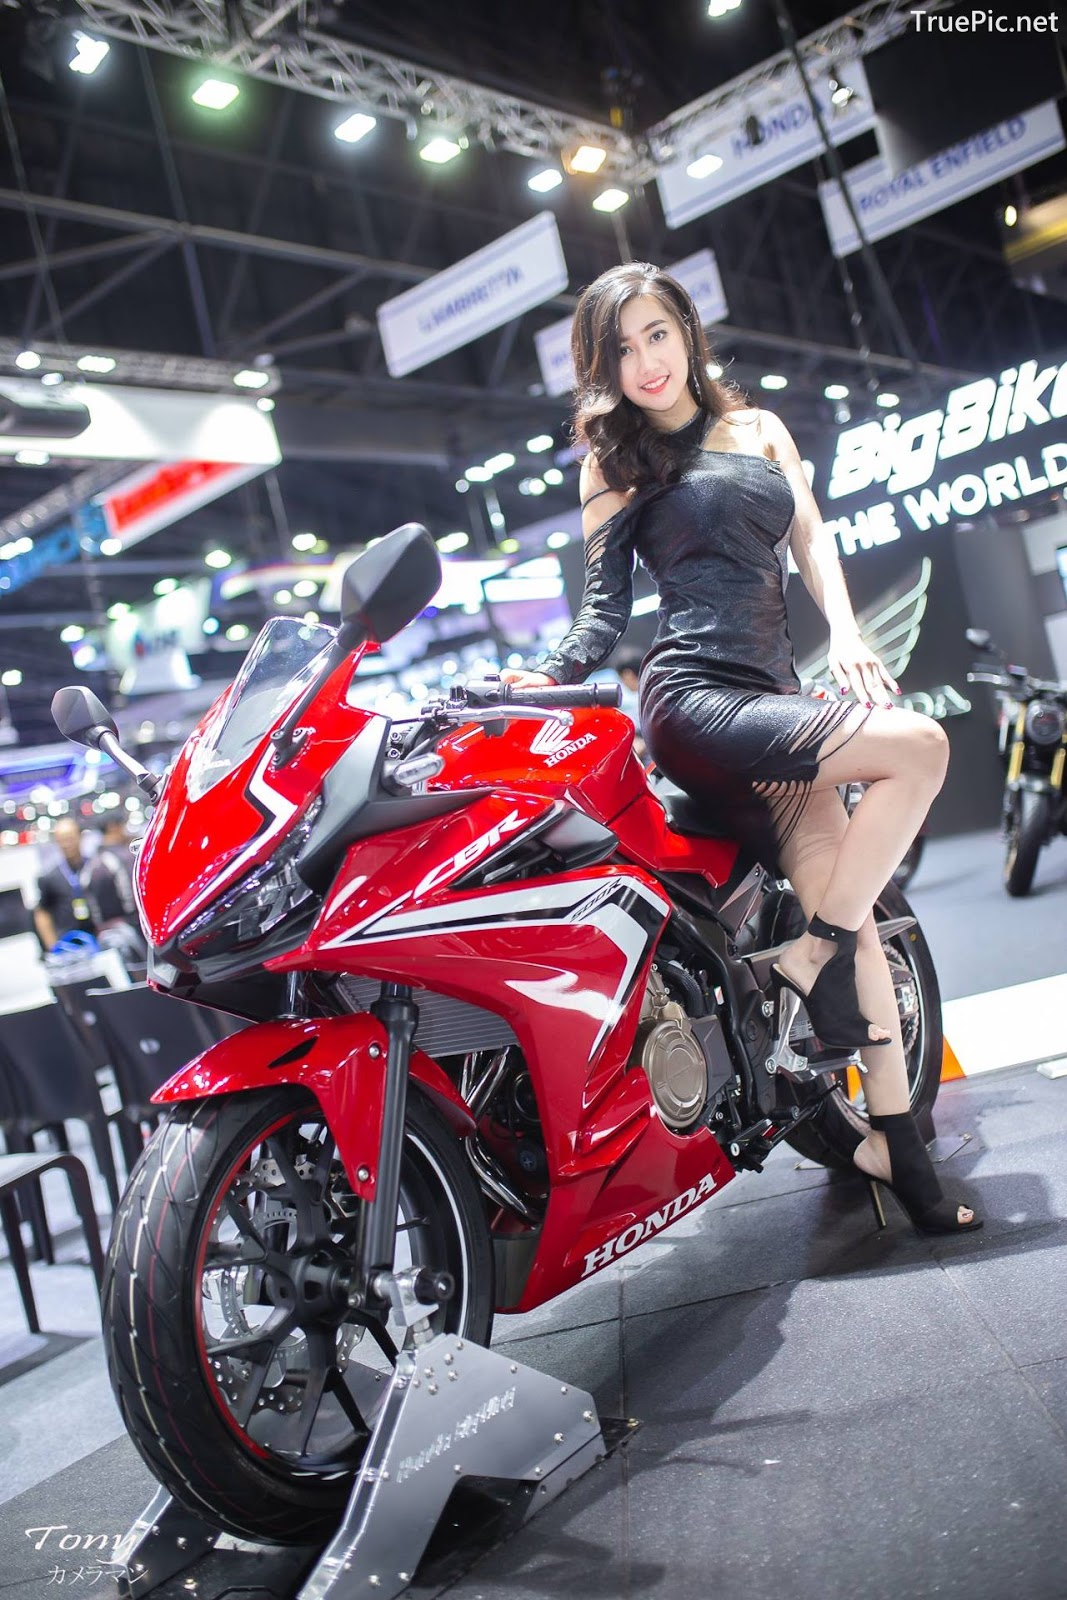 Image-Thailand-Hot-Model-Thai-Racing-Girl-At-Motor-Expo-2018-TruePic.net- Picture-2